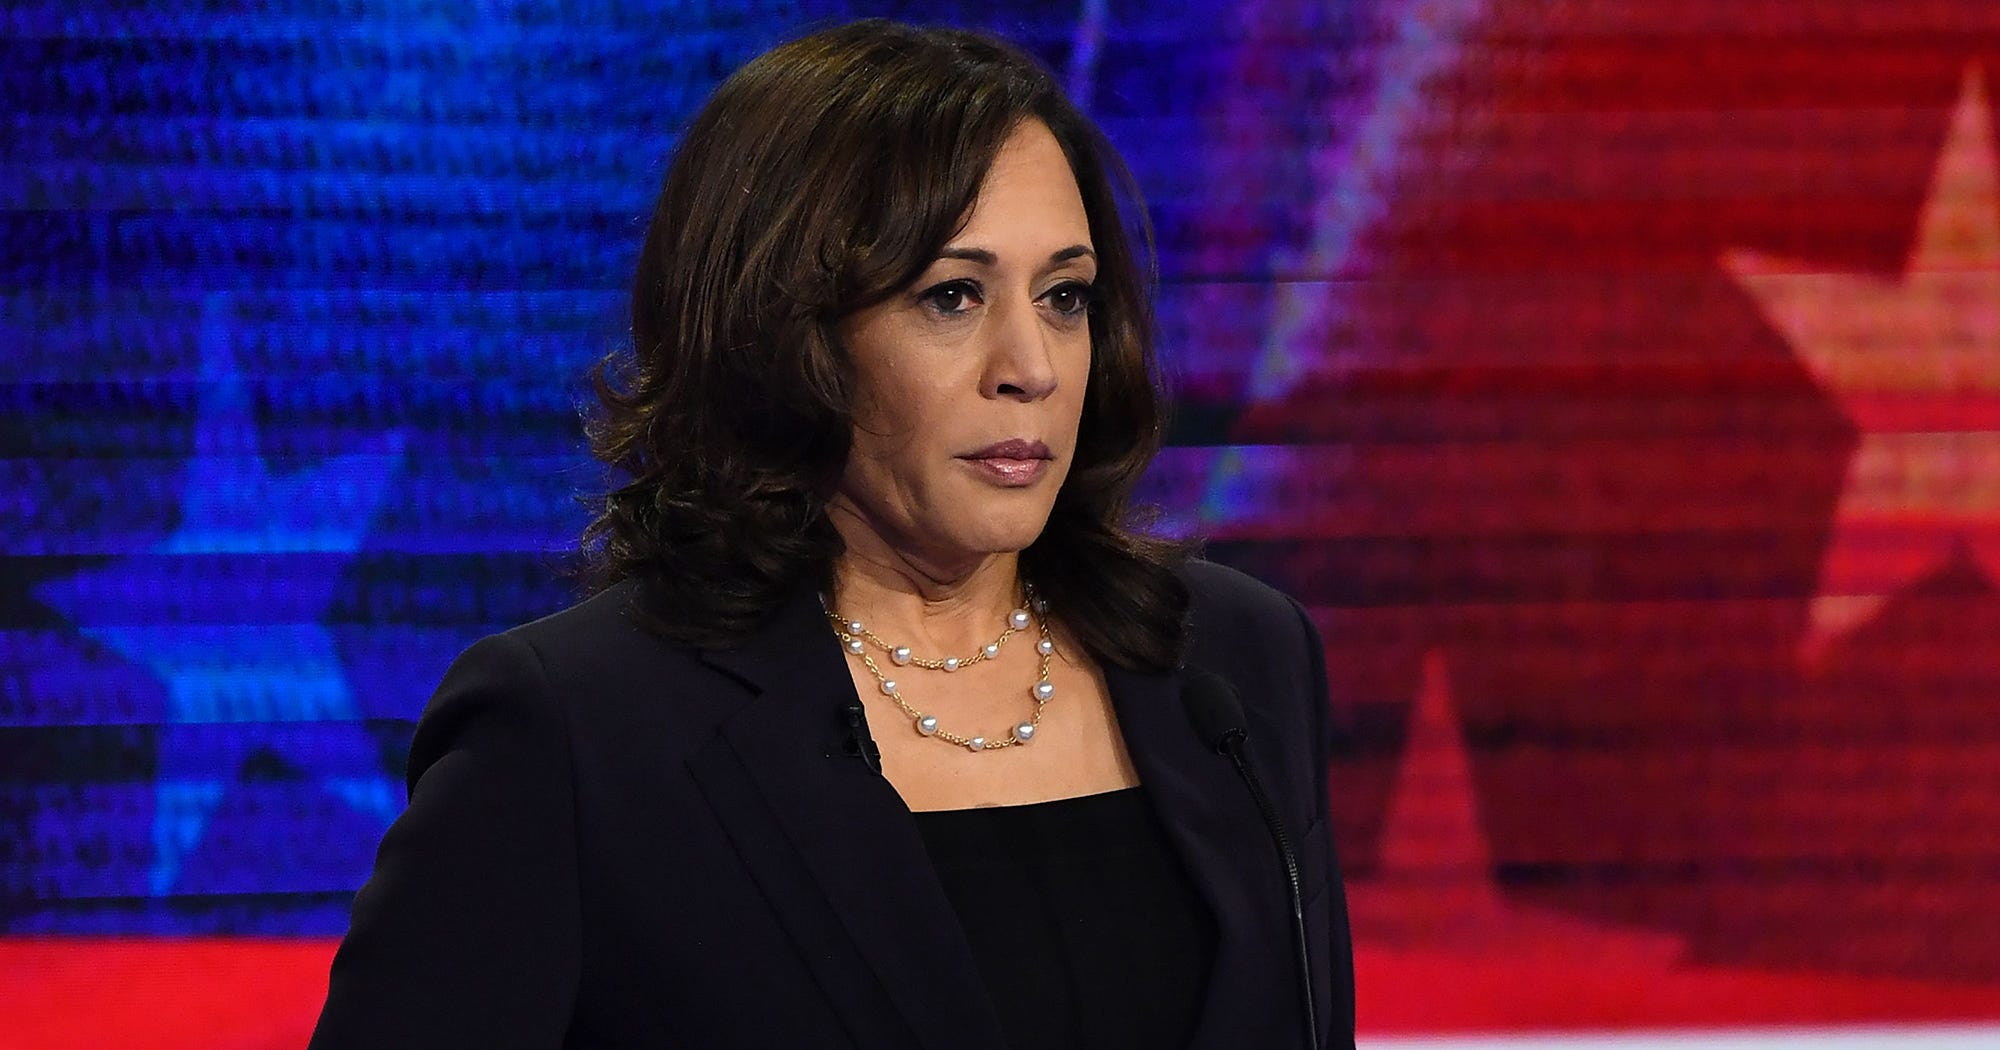 What You Need To Know About Kamala Harris' Record As A Prosecutor